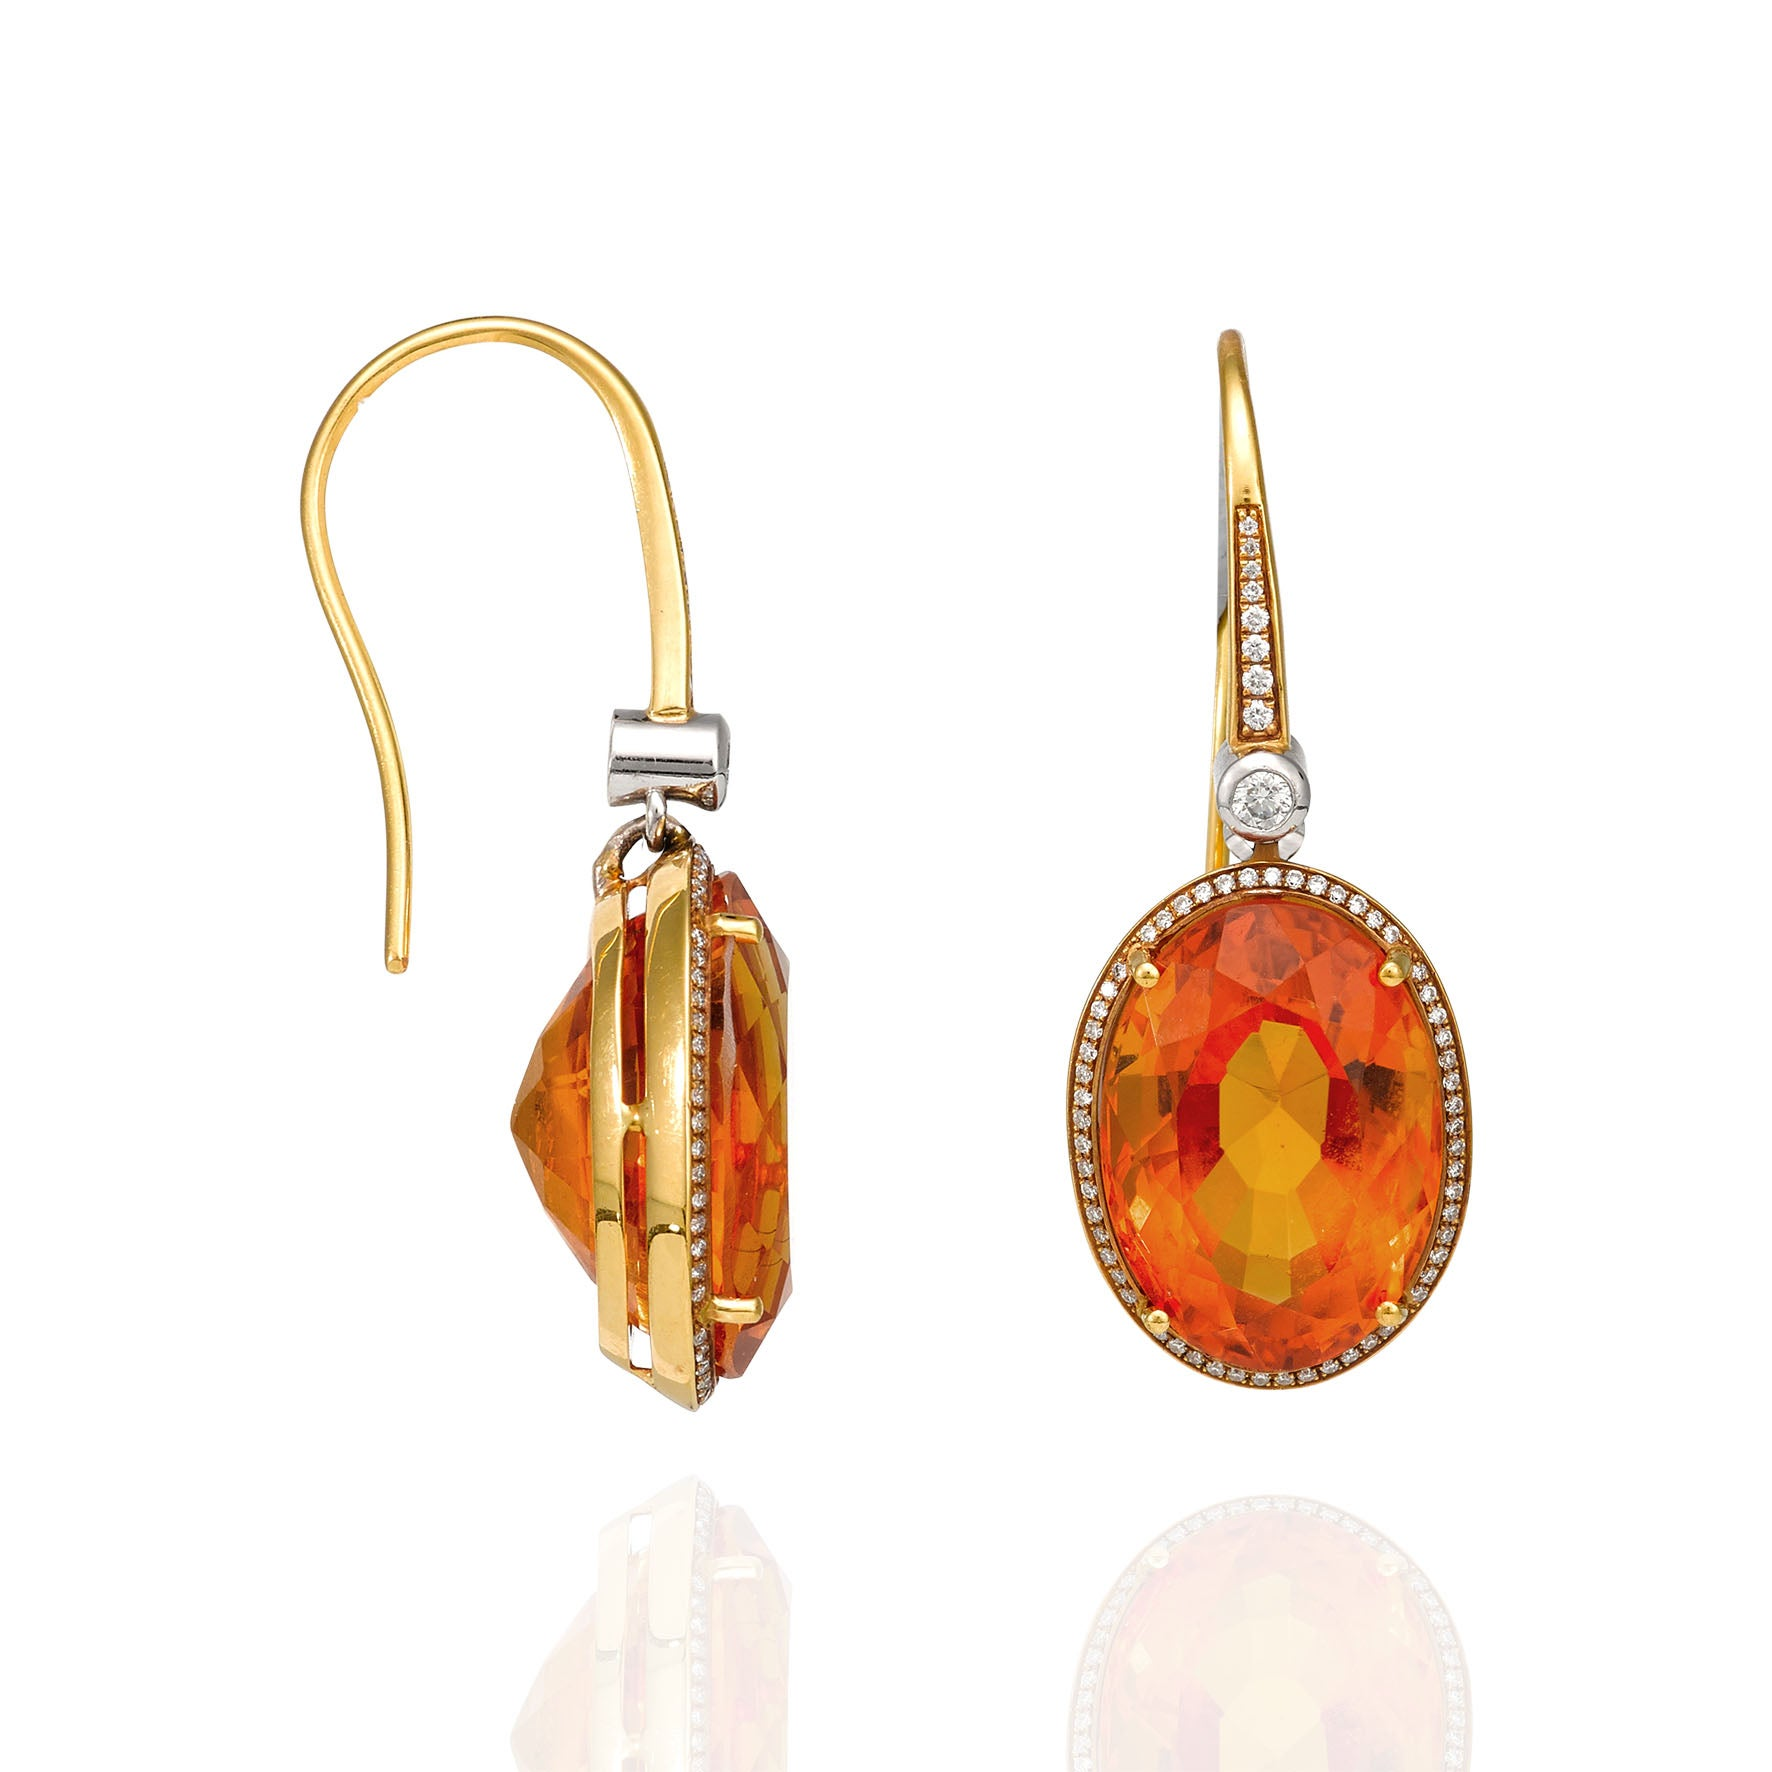 dafcbdde7 Giulians Art Deco Inspired Oval Cut Citrine and Diamond Drop Earrings For  Sale at 1stdibs